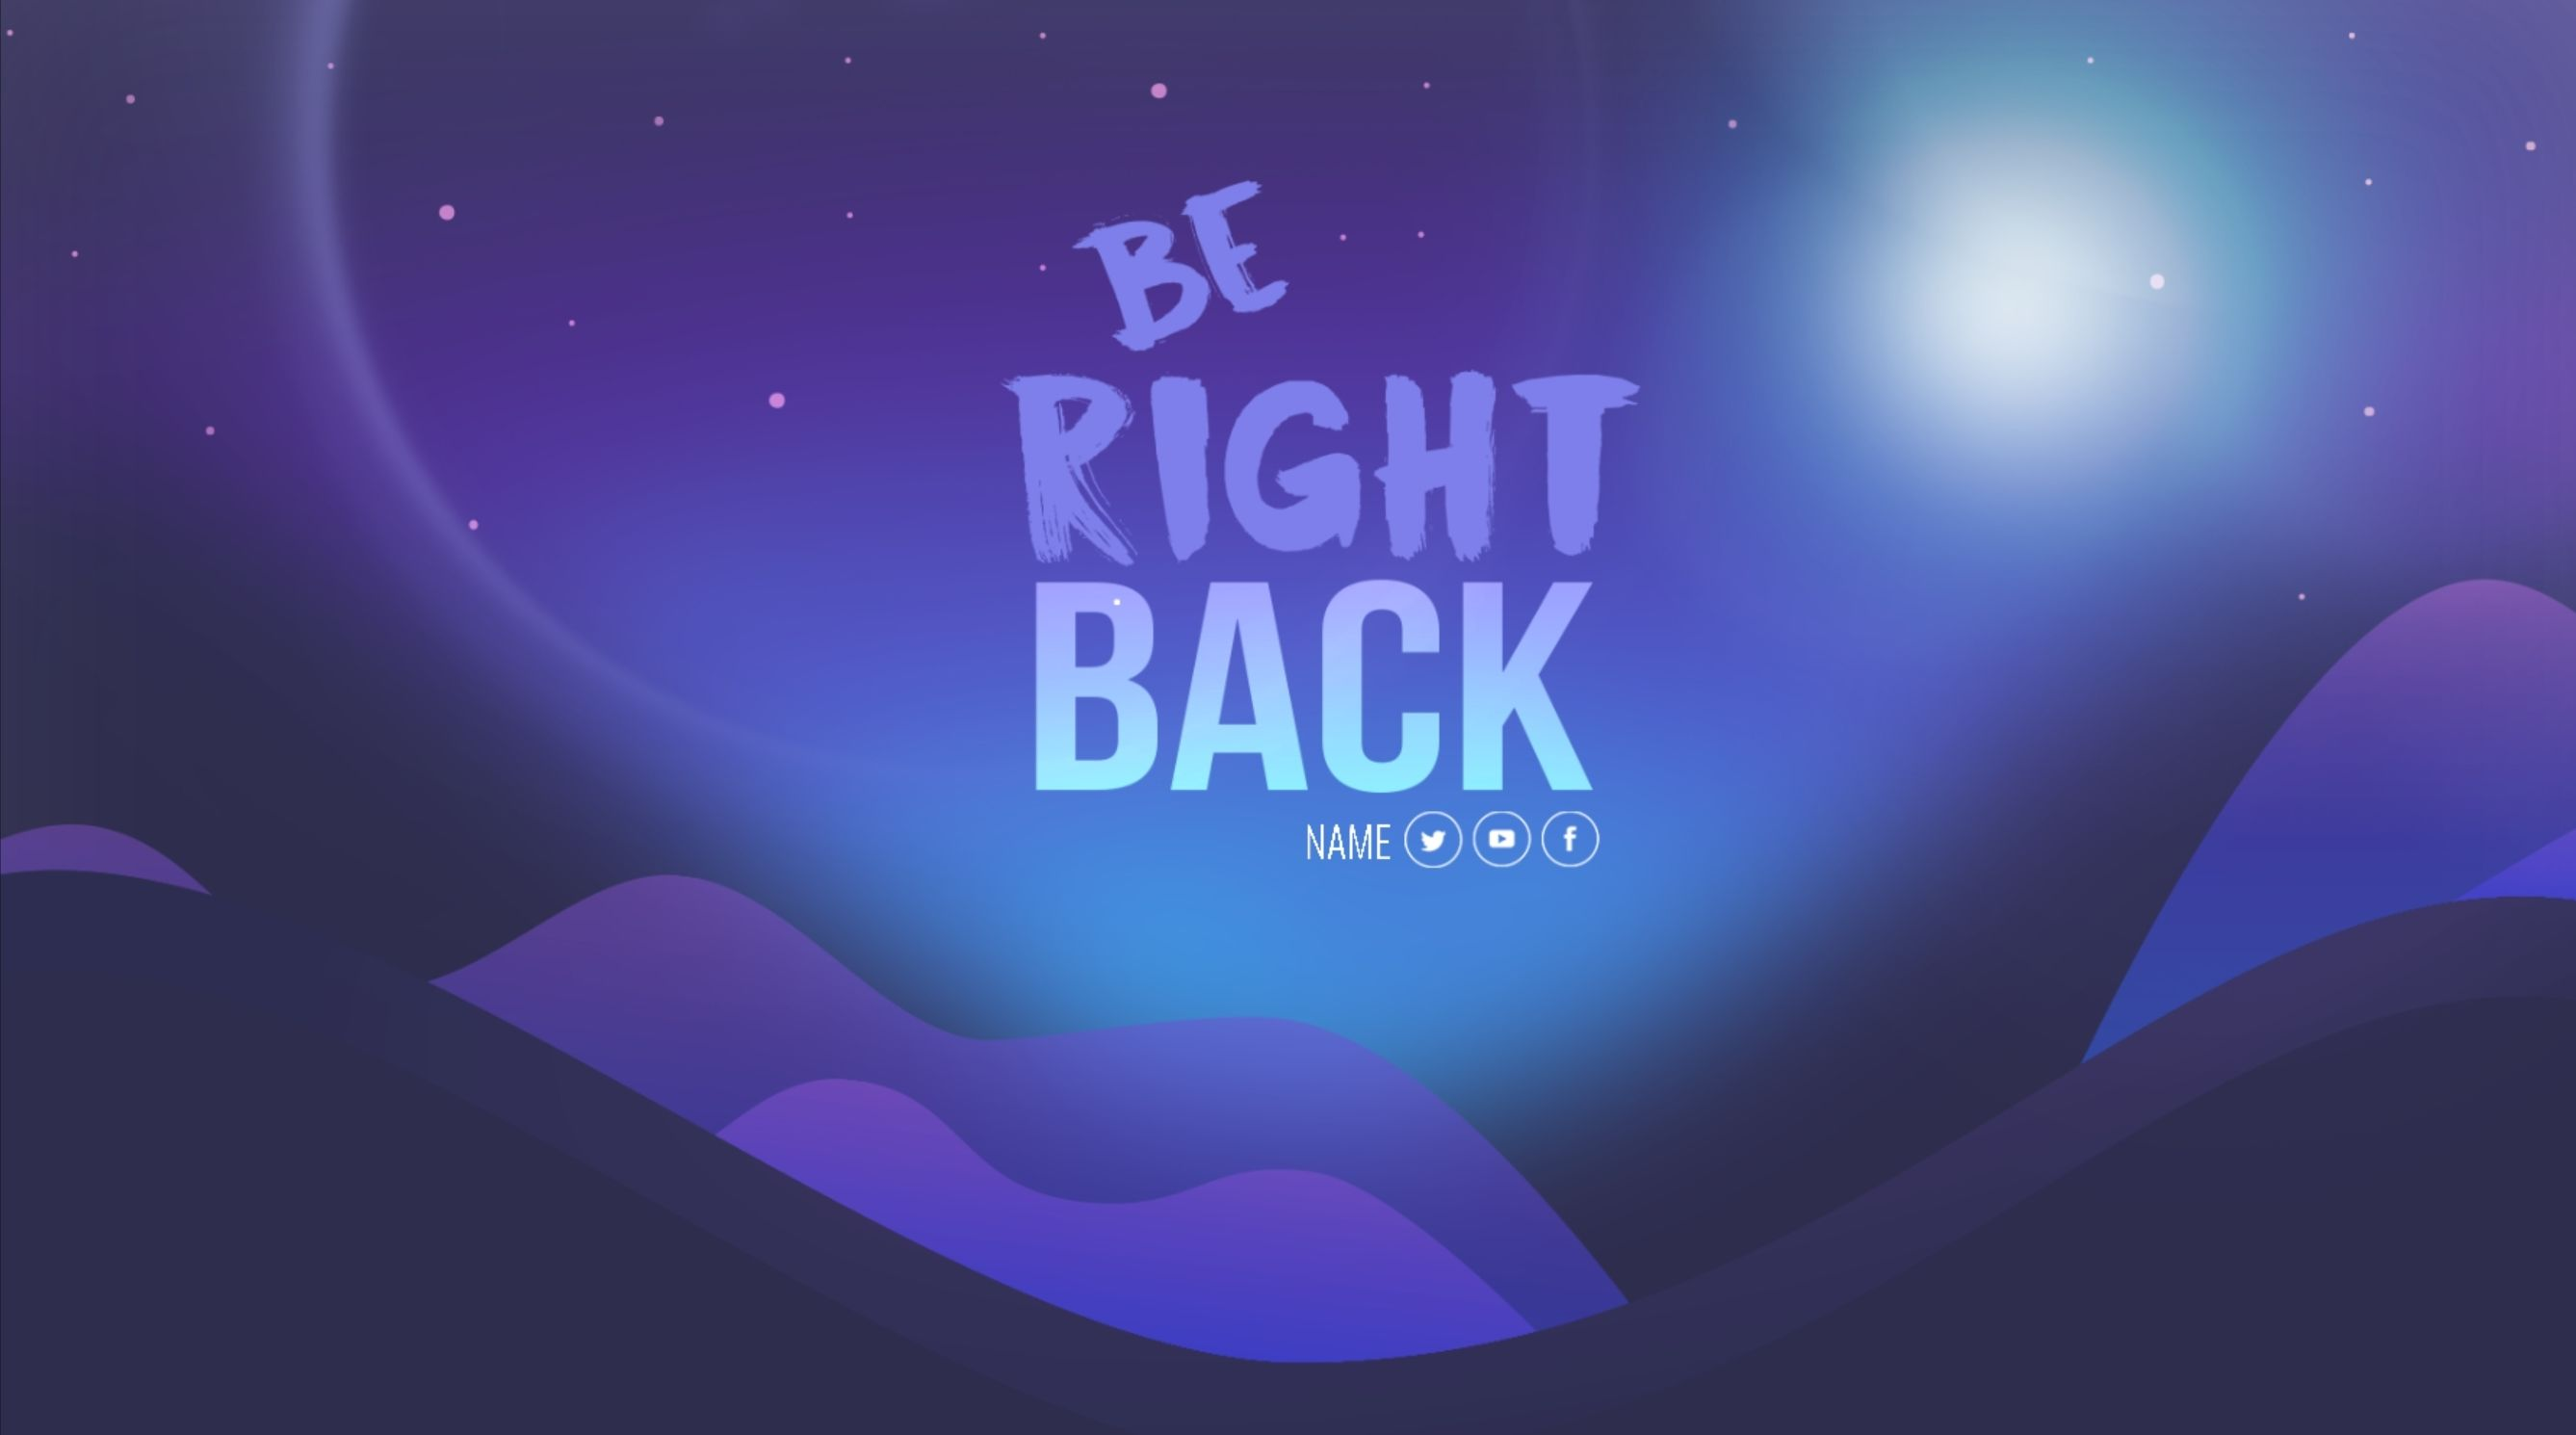 Library / Streamlabs | Twitch Be Right Back | Graphic design art